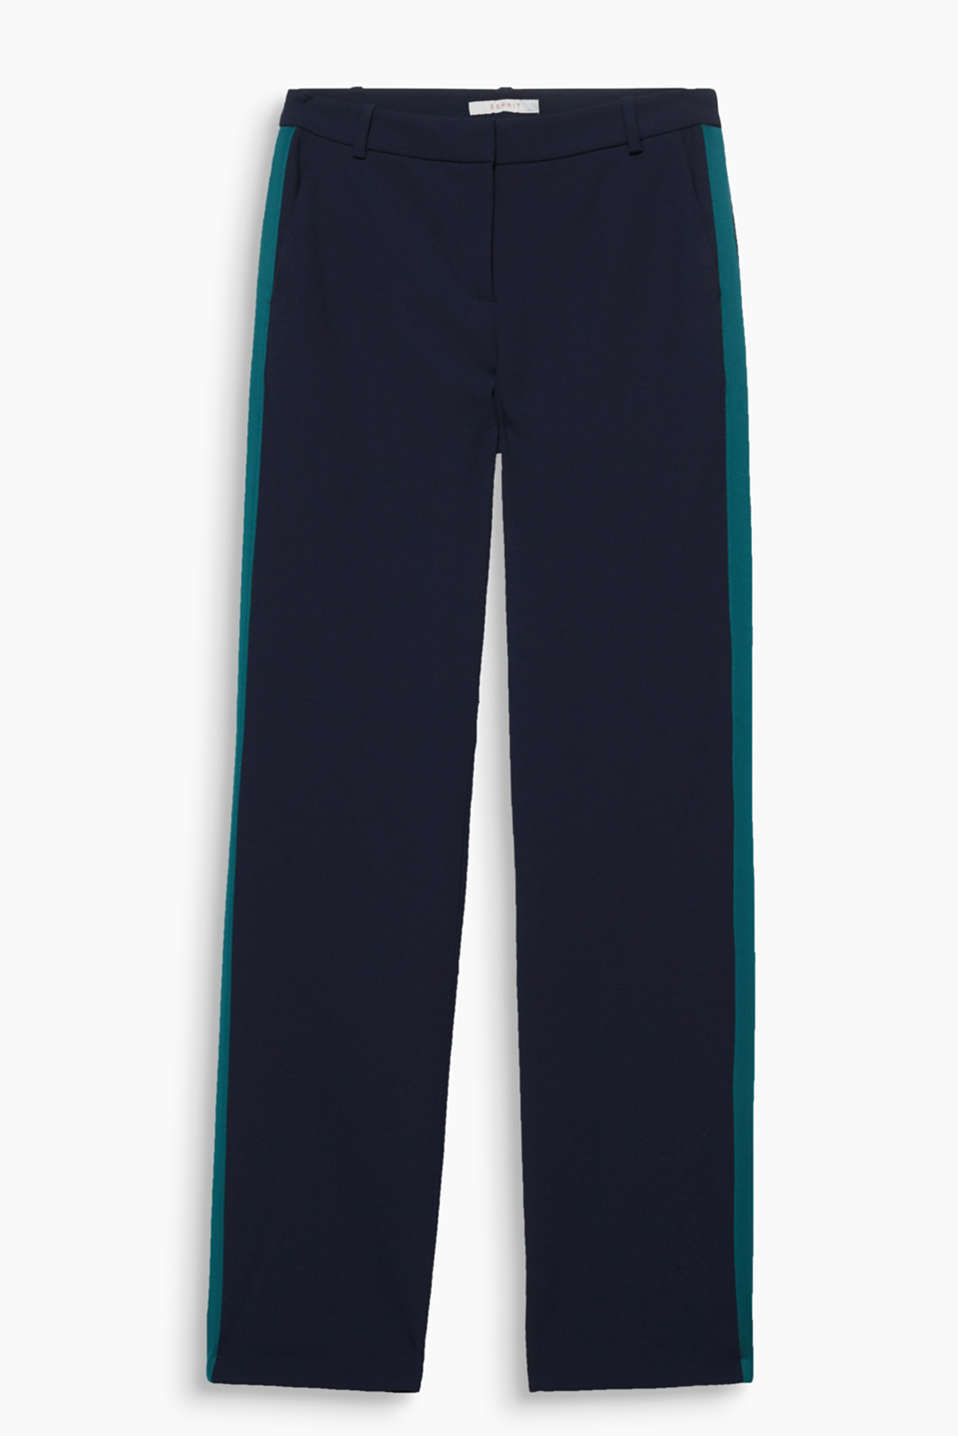 So smart, so casual: these flowing crêpe trousers with side galon stripes can look chic and laid-back!